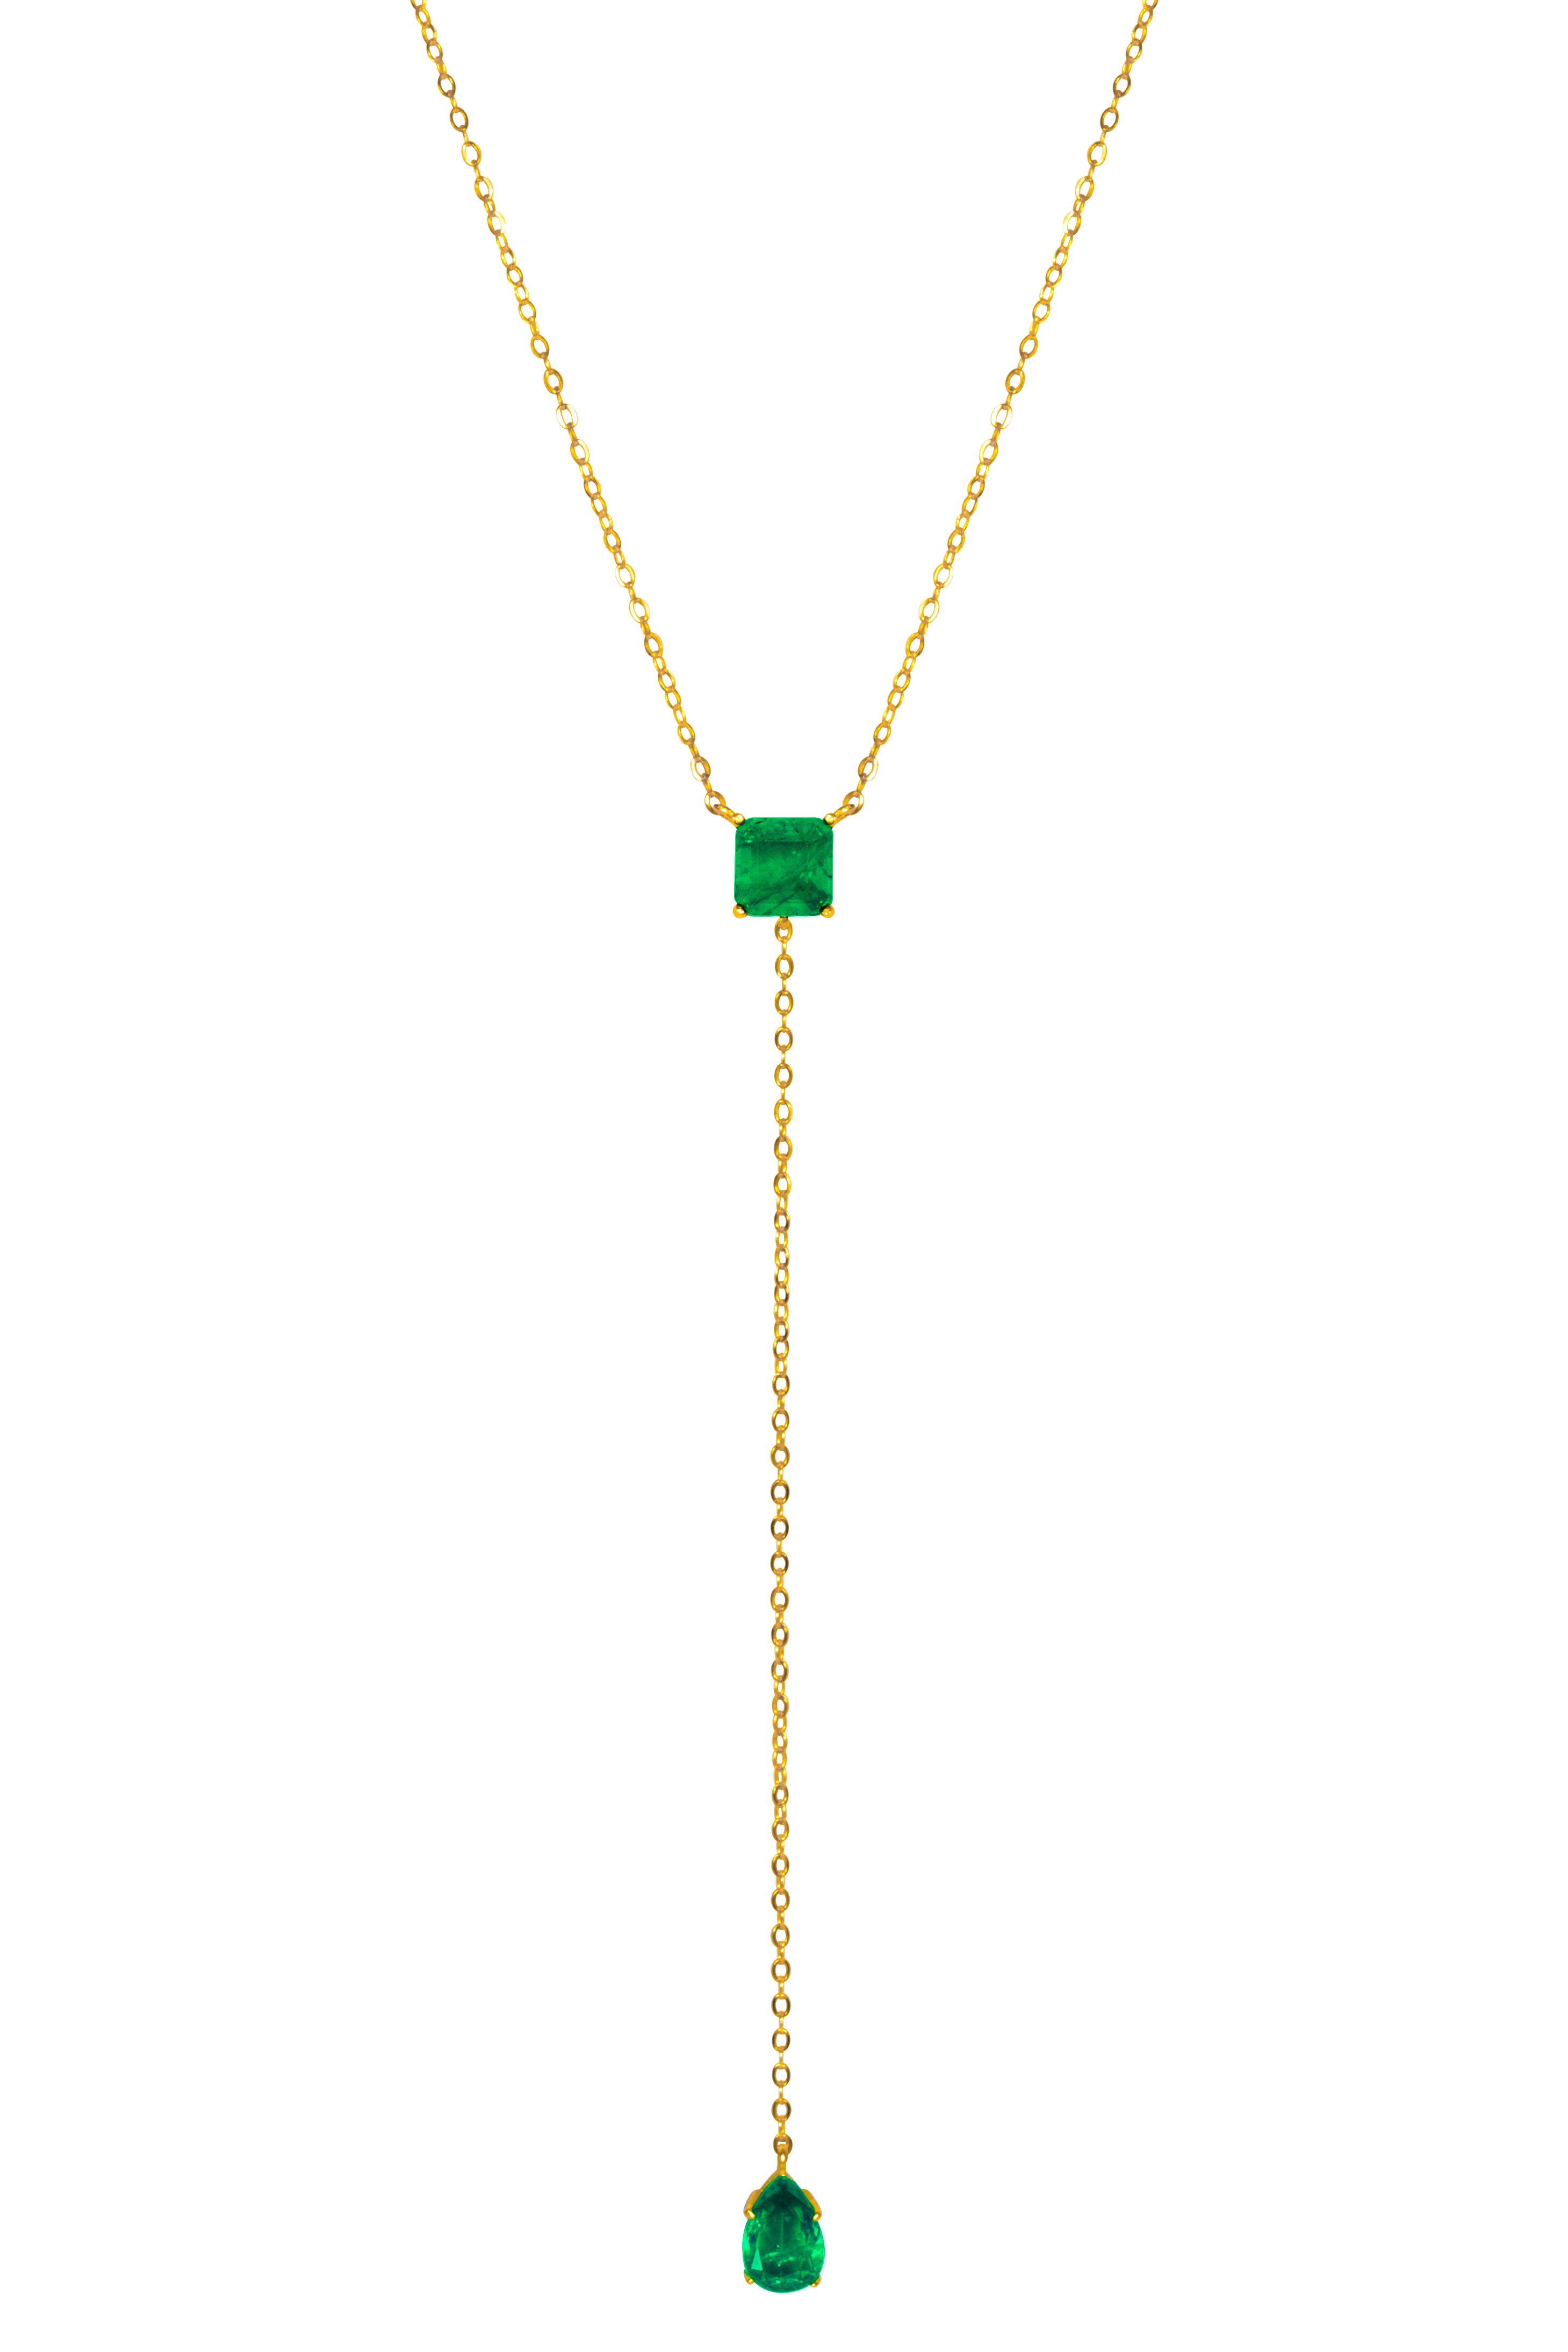 Silver gold plated square & pear emerald lariat necklace